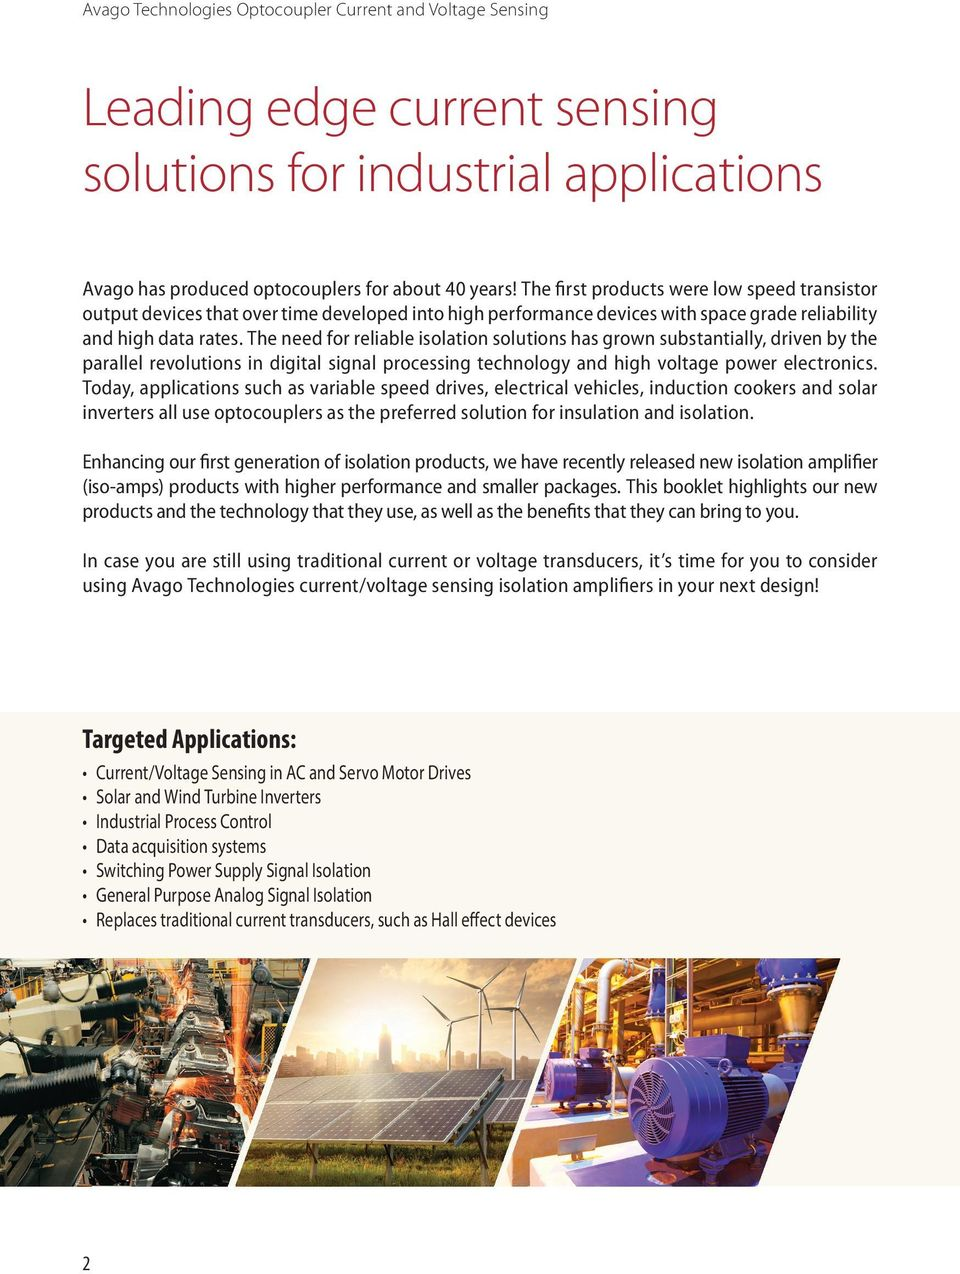 The need for reliable isolation solutions has grown substantially, driven by the parallel revolutions in digital signal processing technology and high voltage power electronics.